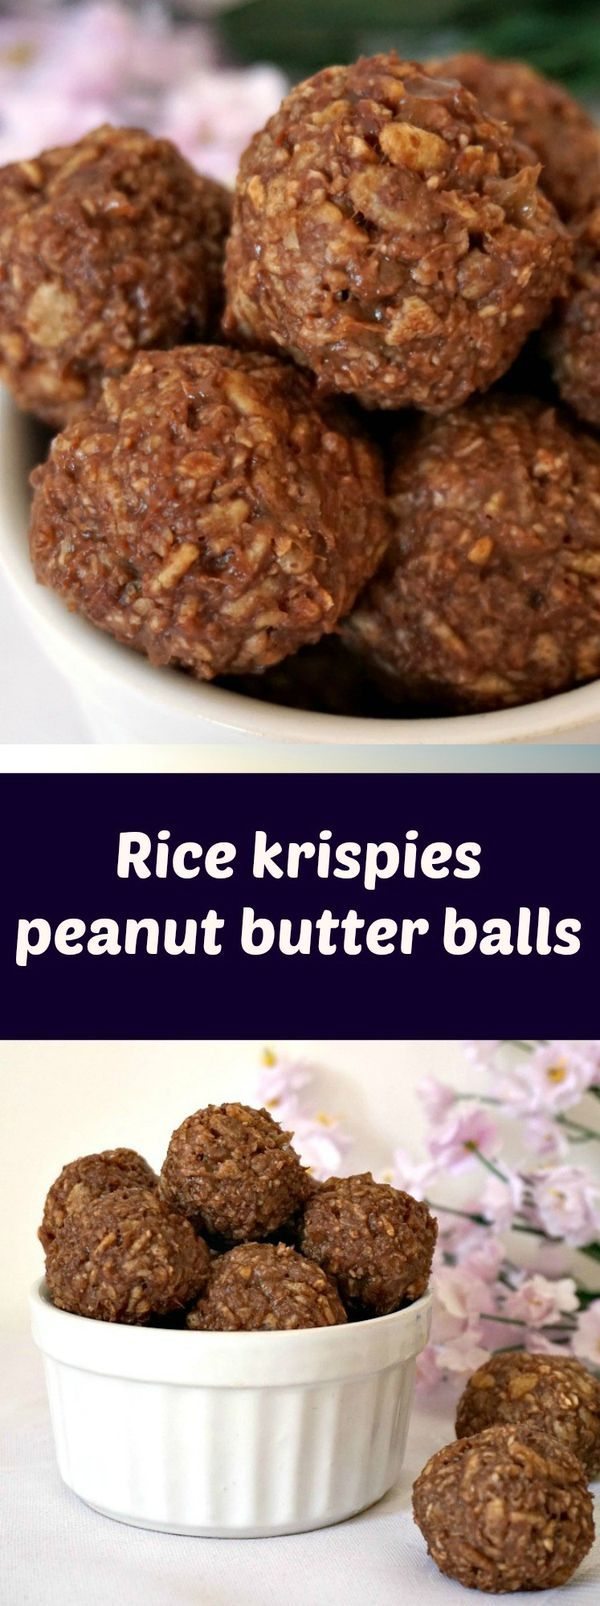 Rice krispies peanut butter balls with no refined sugar added, a healthy snack recipe to fill you up with energy. The best desserts for kids and grown ups.